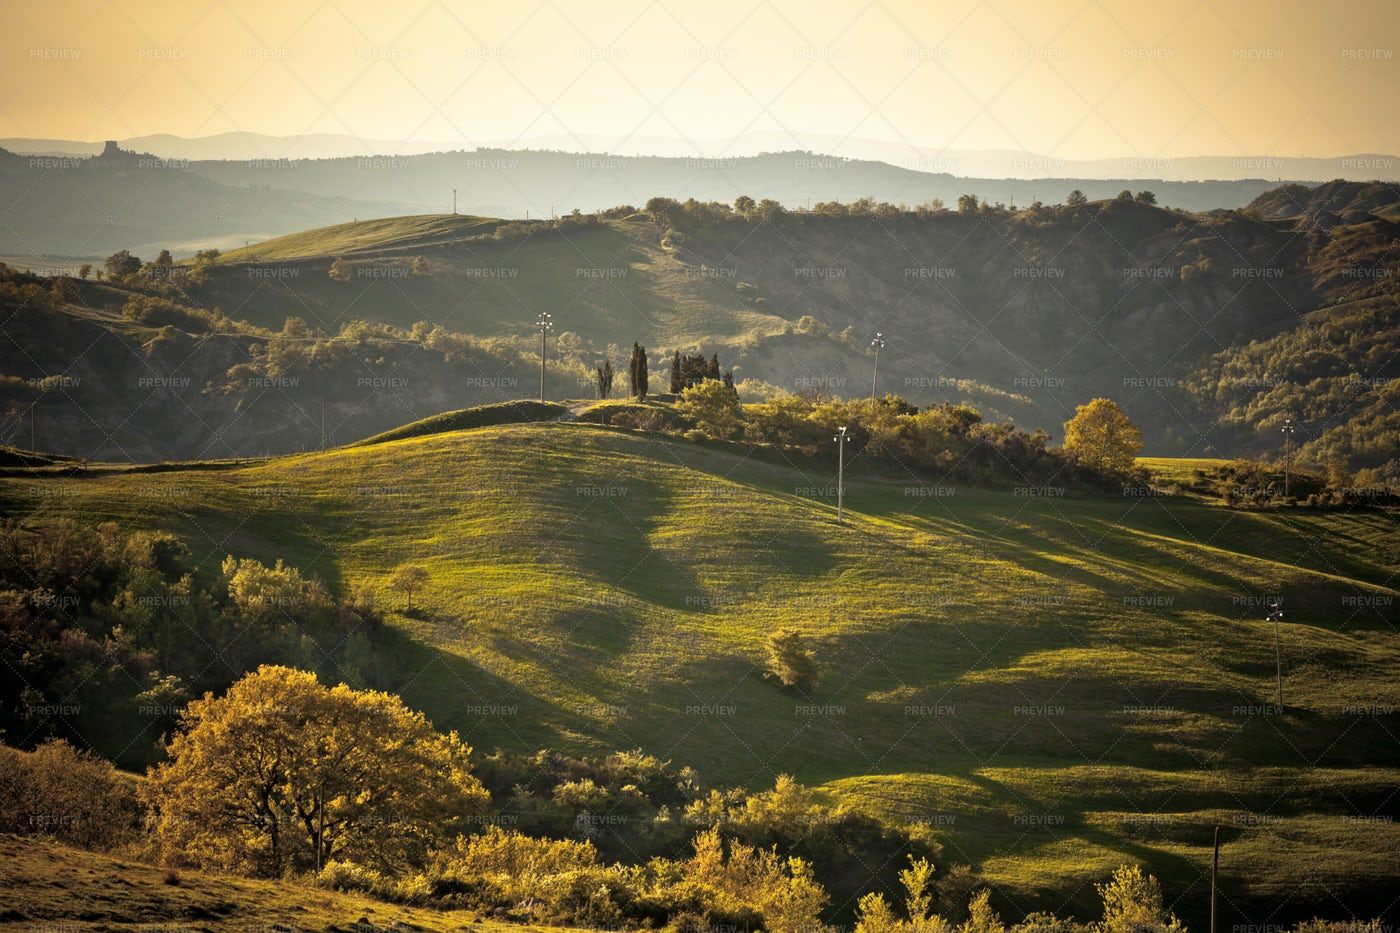 Tuscan Hills Italy Landscape: Stock Photos